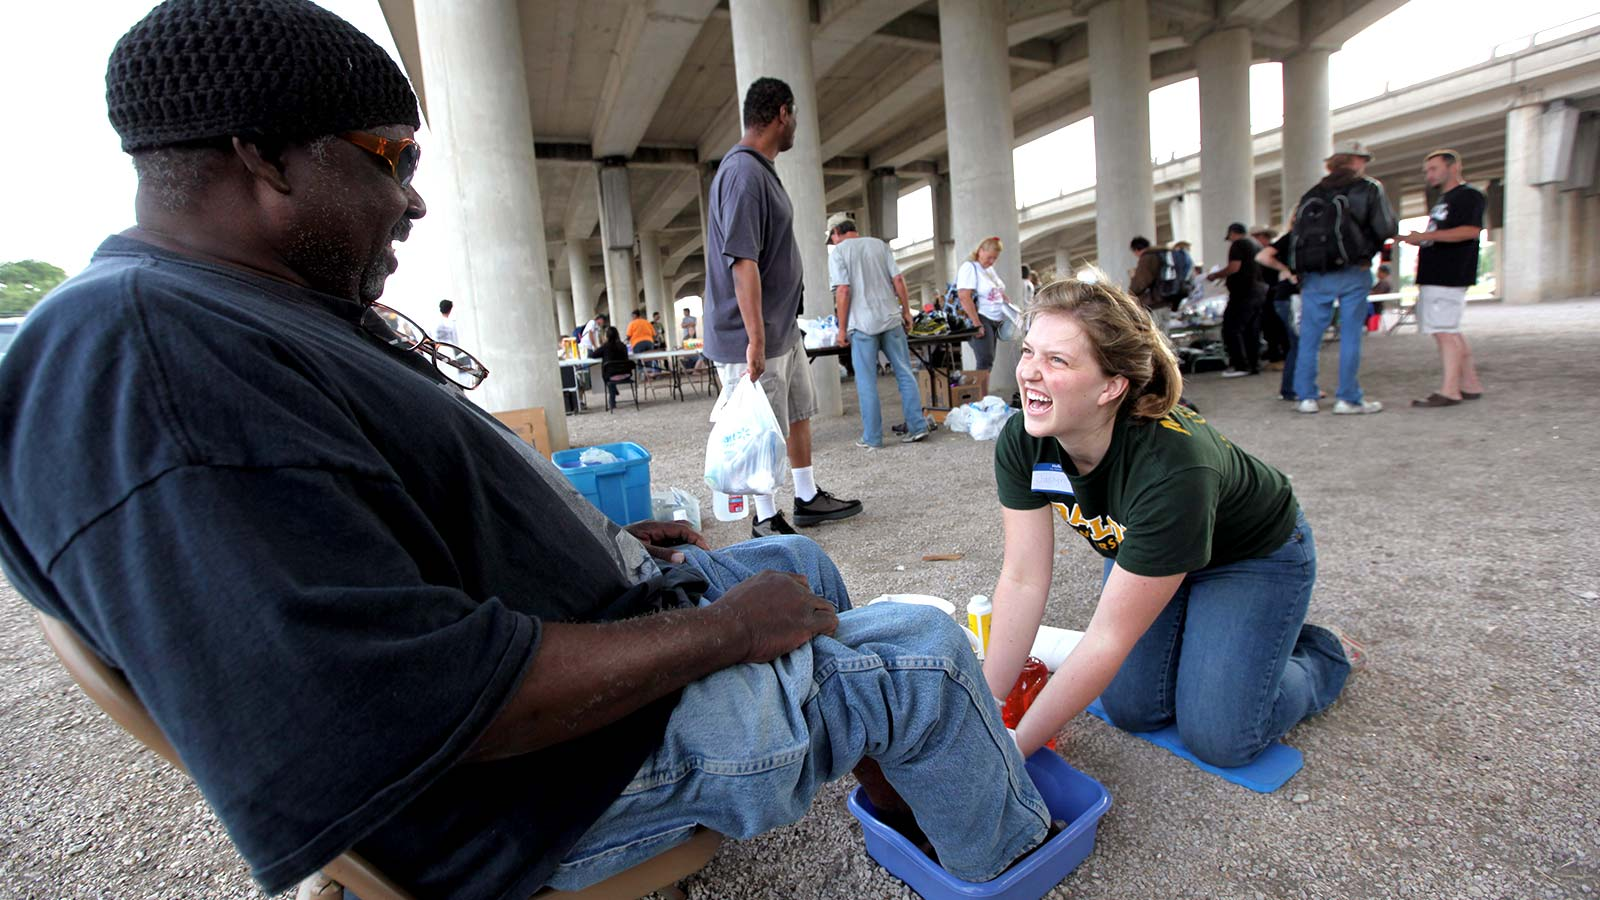 For 20 years, Baylor students have joined with Mission Waco for Church Under the Bridge, a ministry of worship and service with people of diverse backgrounds.